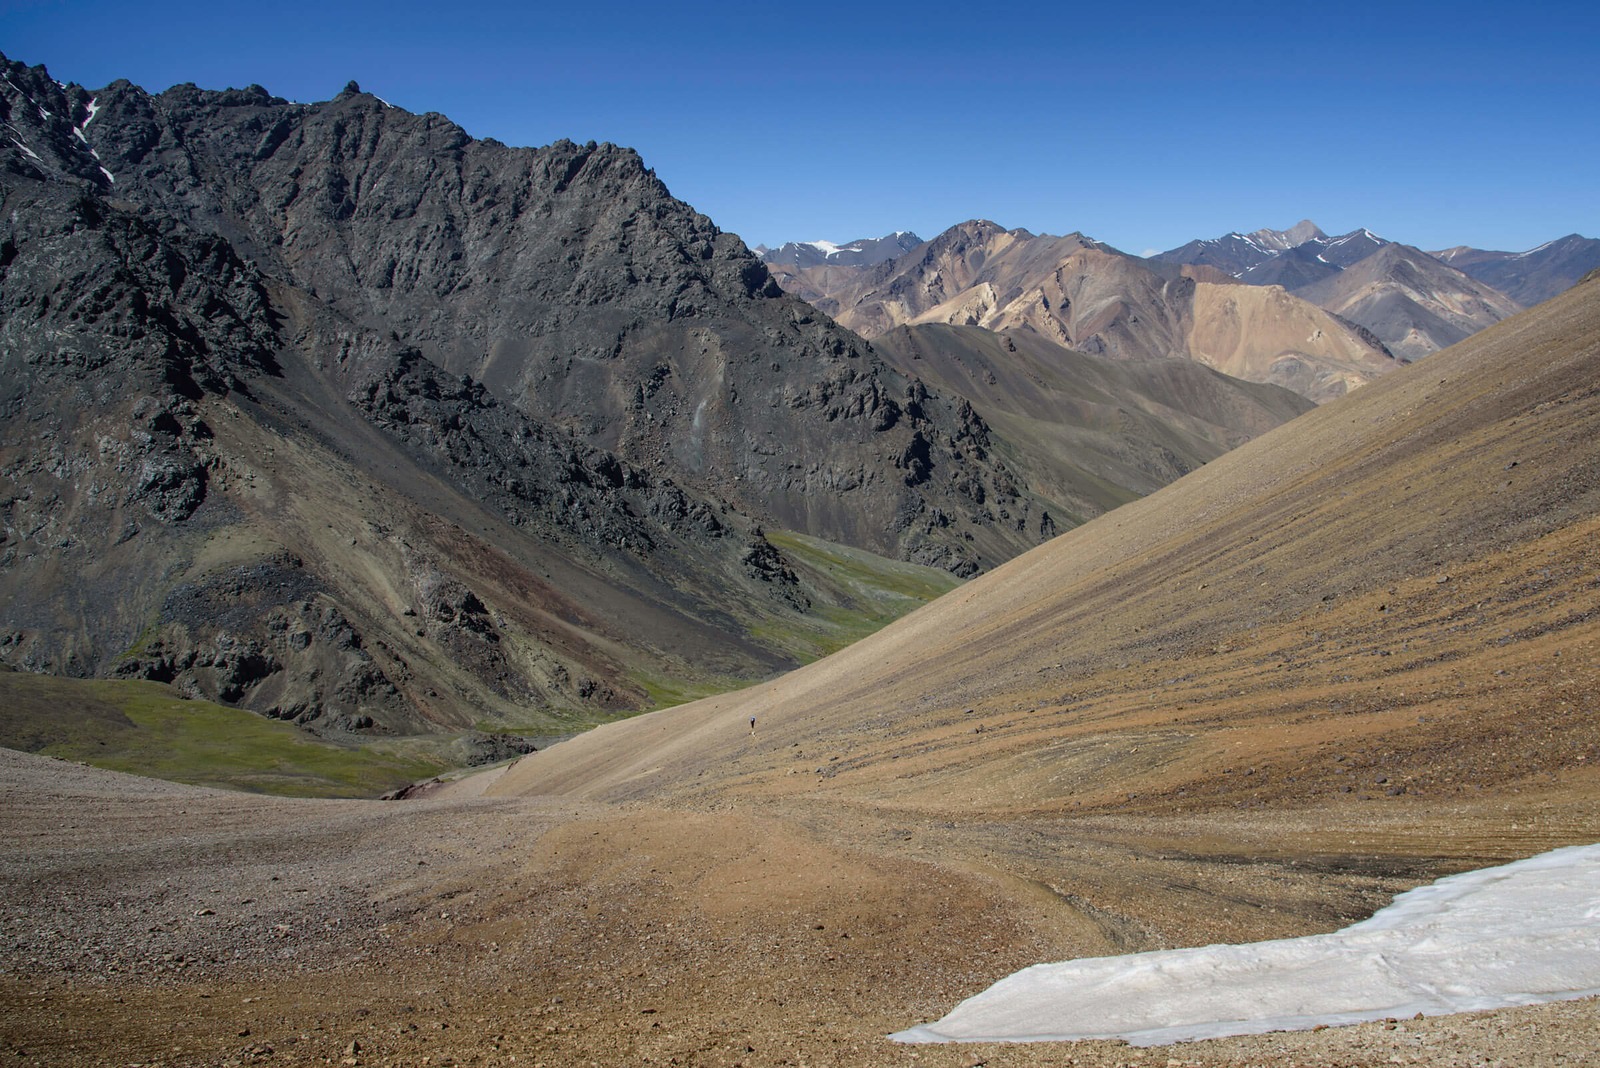 Treking in the Pamir Mountains of Tajikistan